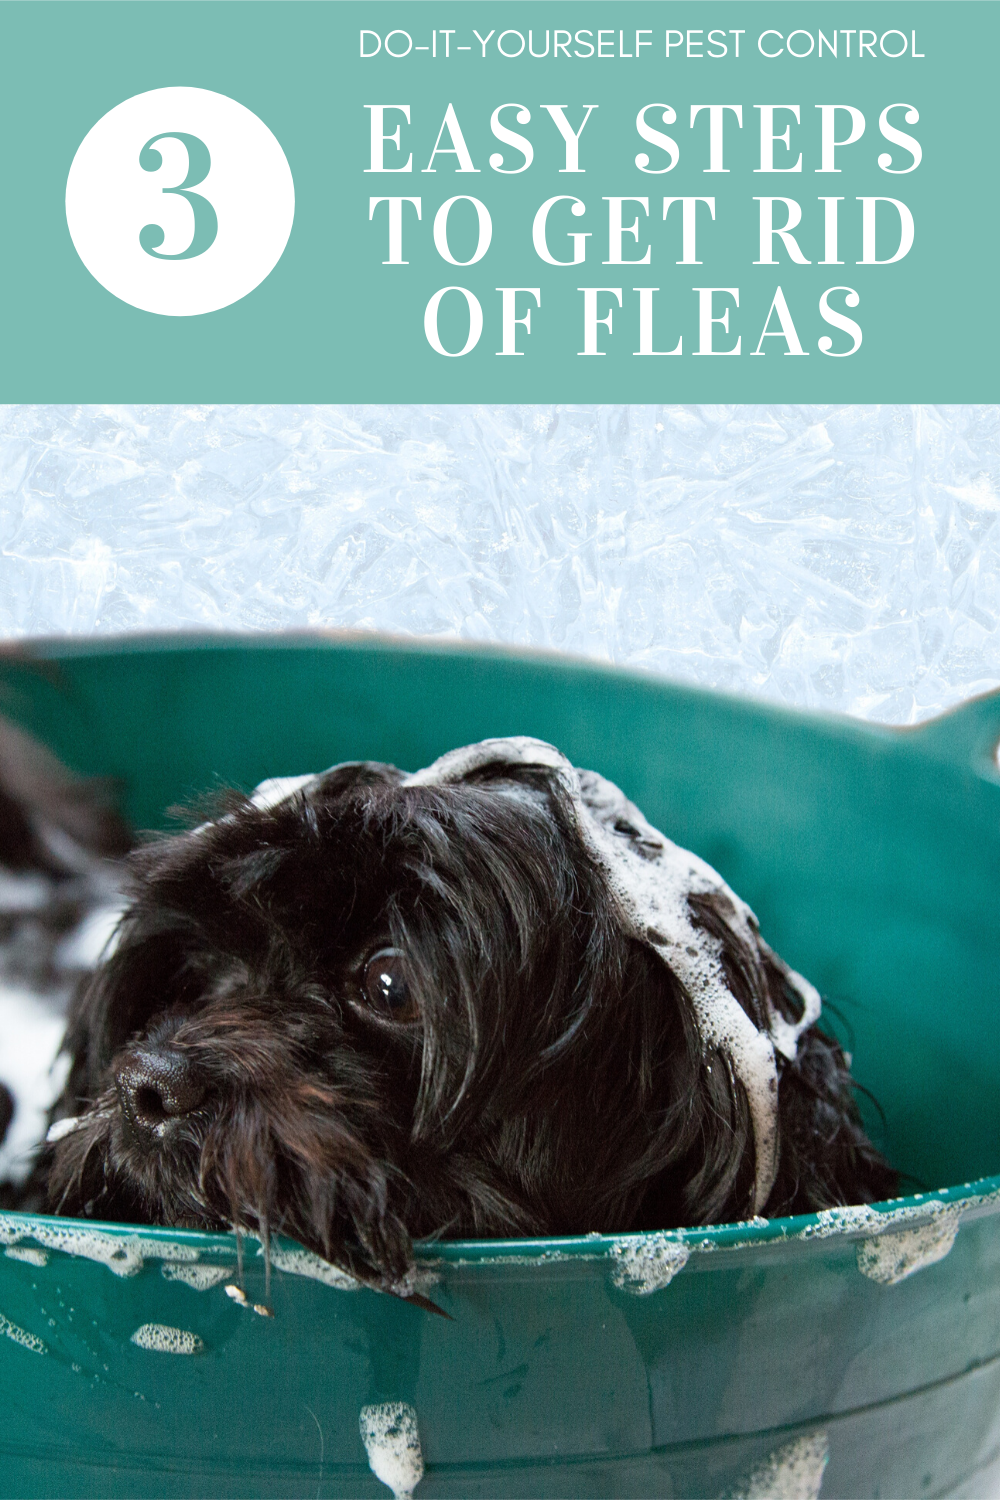 flea bath to remove fleas